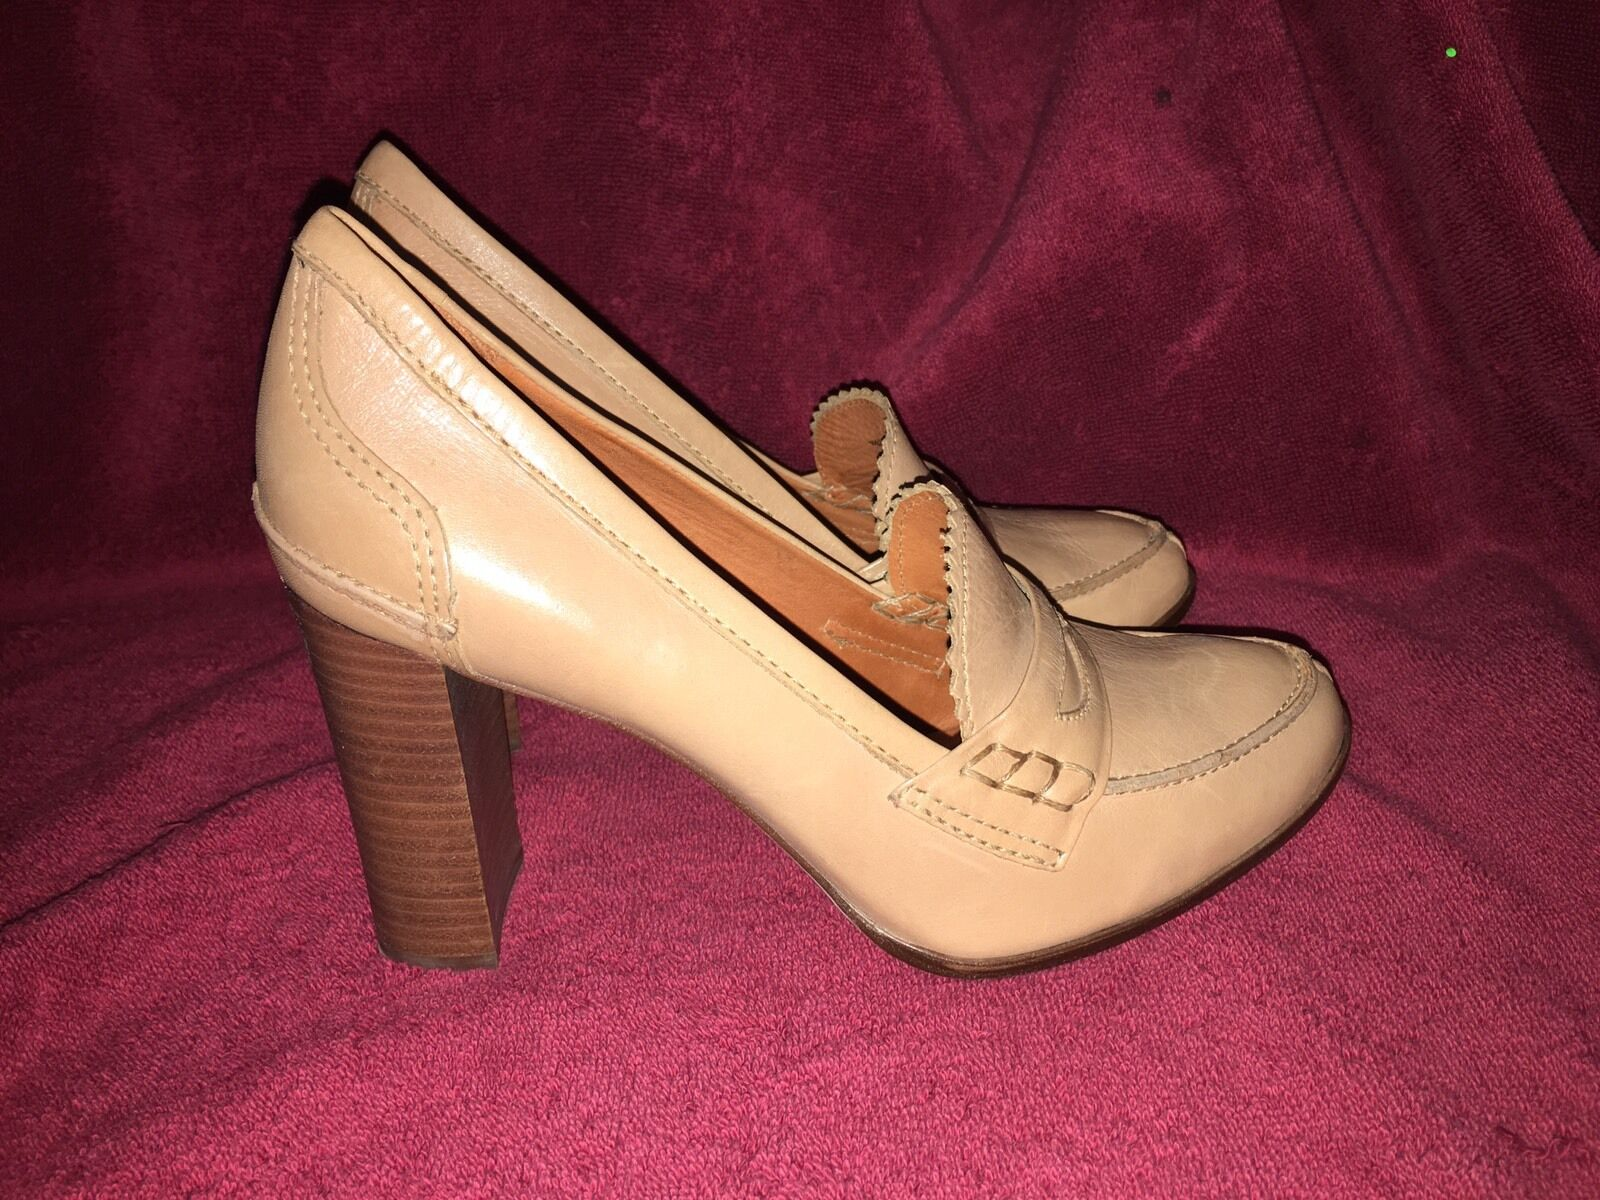 Pour La Victoire Beige Block Heel Loafer Shoes Size 8